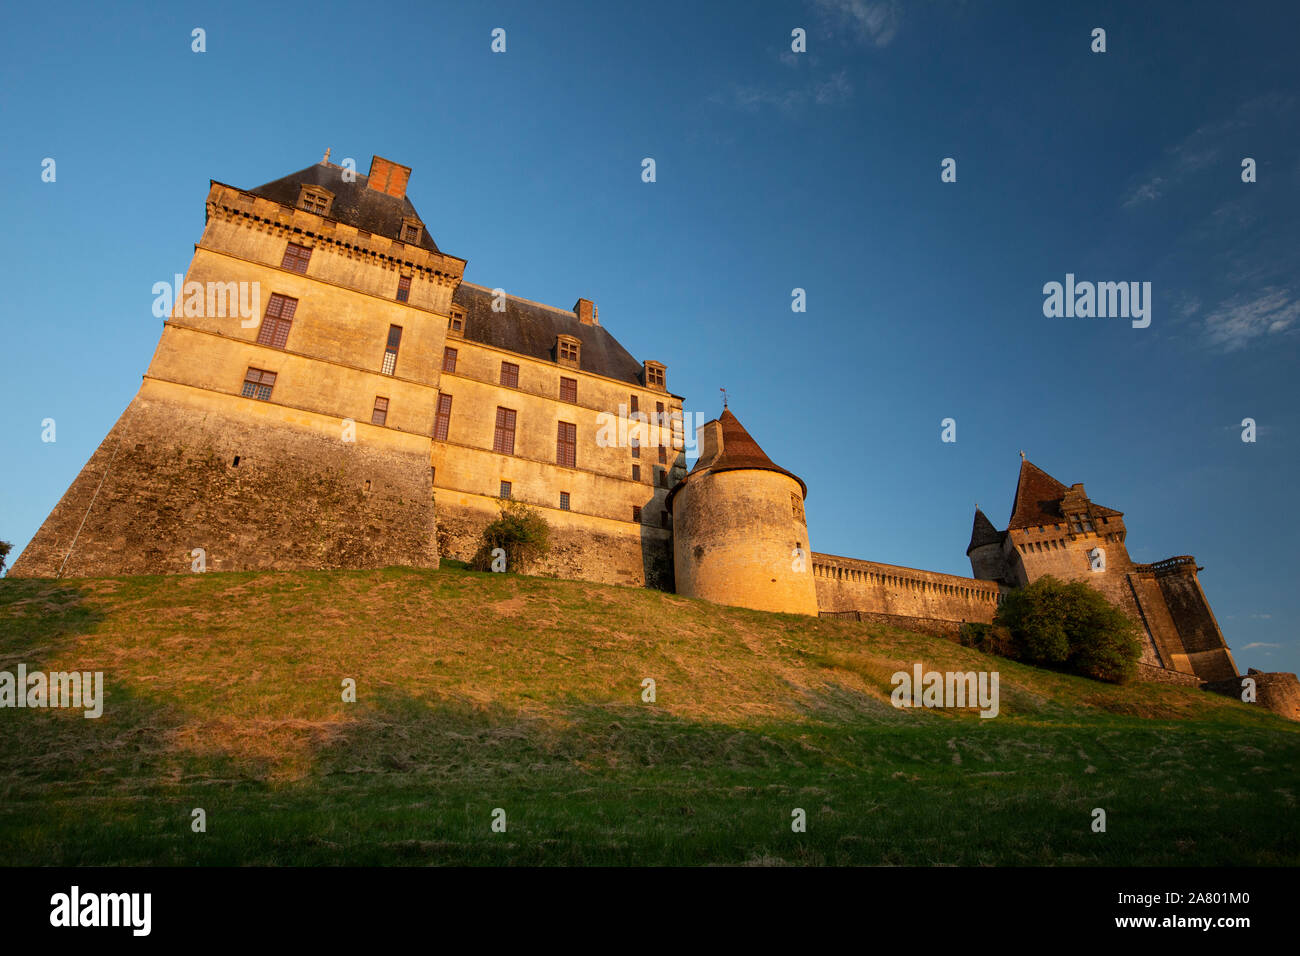 Château de Biron, medieval castle, towards the southern border of the Dordogne region with Lot-et-Garonne and the medieval town of Monpazier, France. Stock Photo